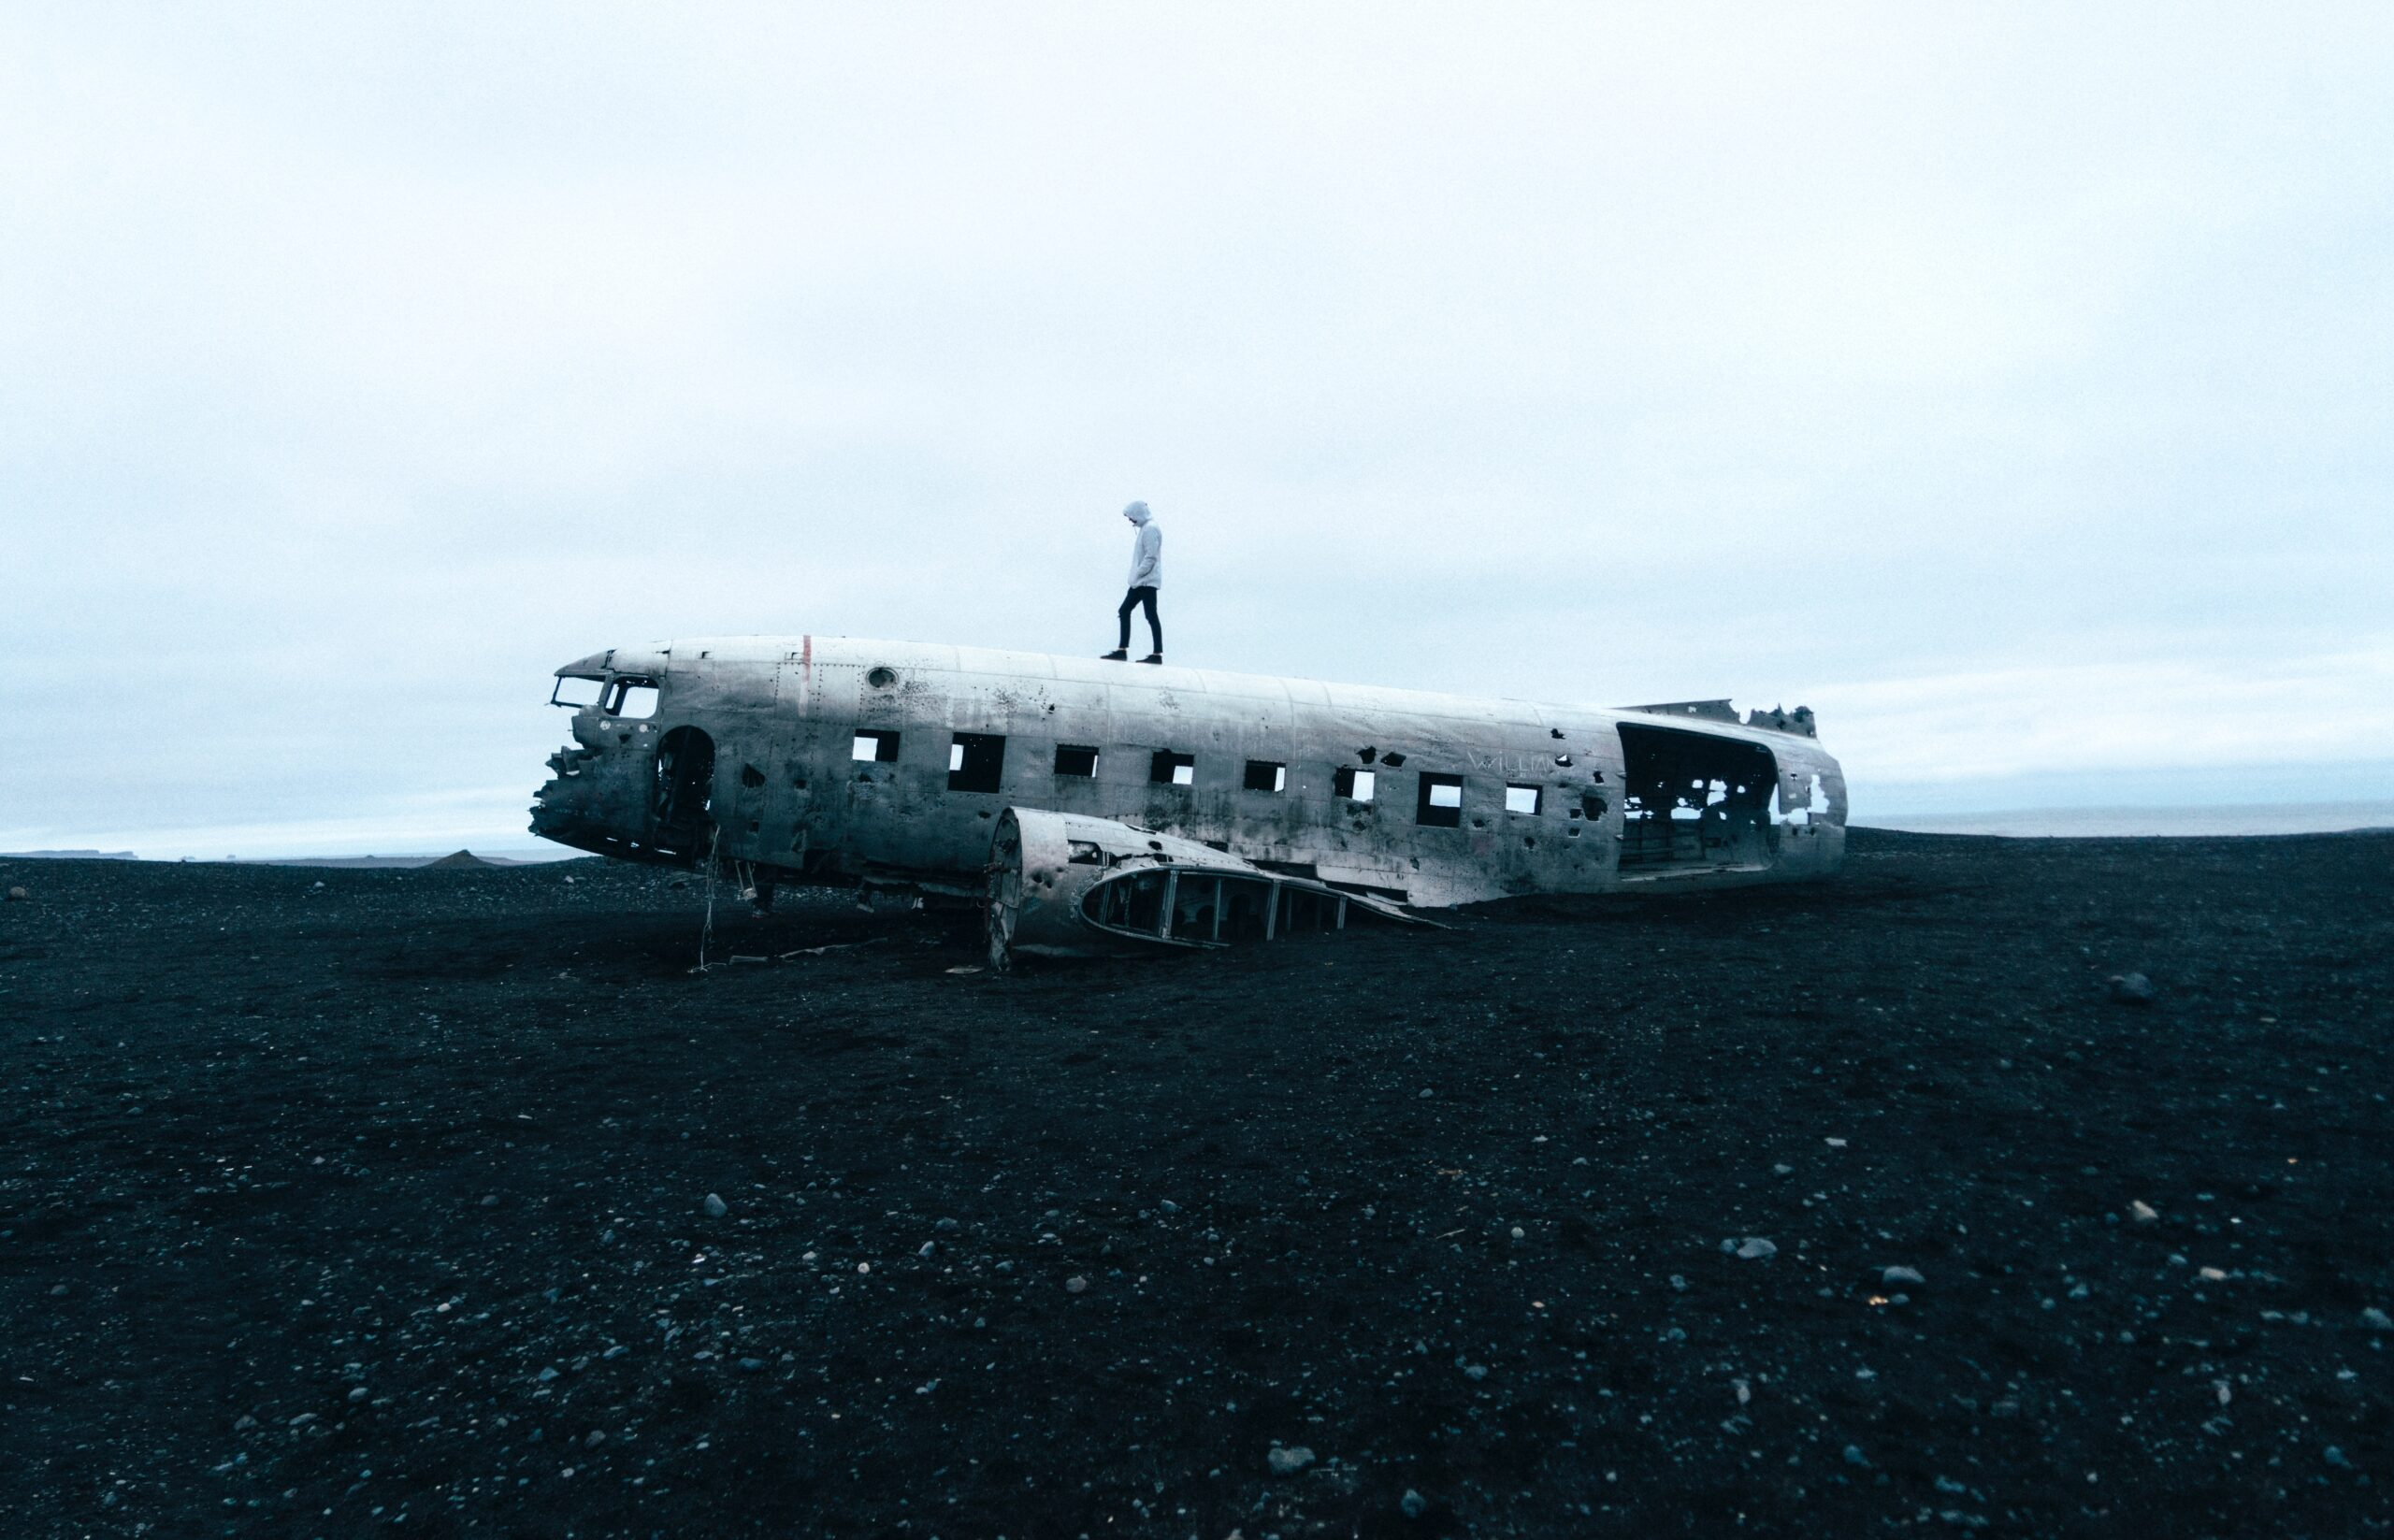 abandoned-aircraft-airplane-919606-scaled-1.jpg